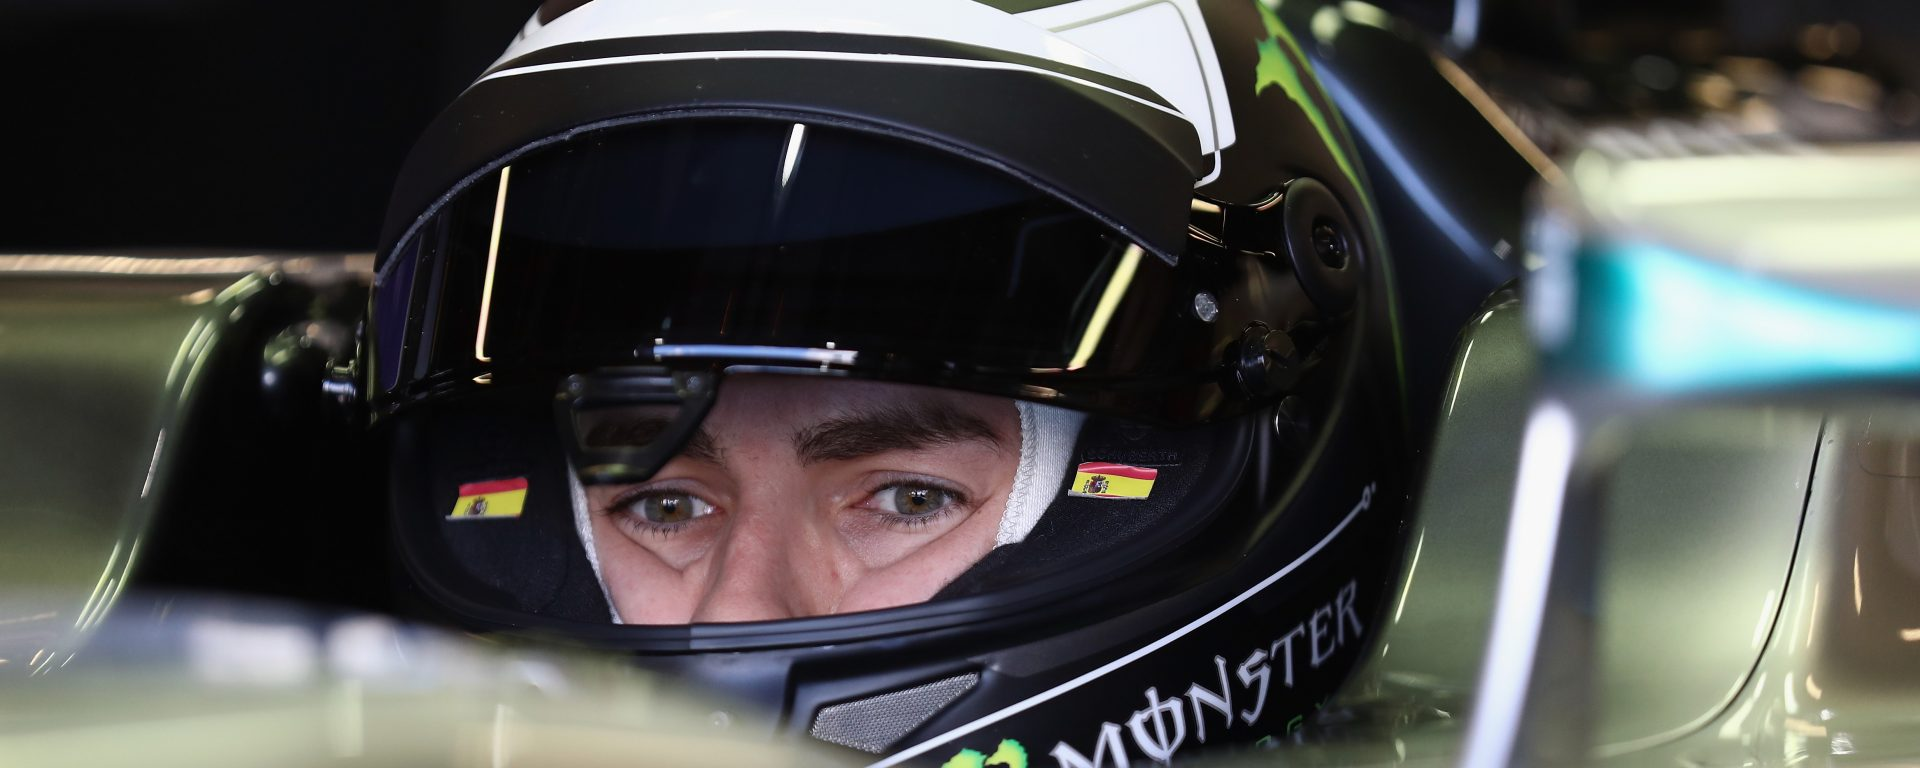 NORTHAMPTON, ENGLAND - OCTOBER 06:  Reigning MotoGP World Champion Jorge Lorenzo of Spain tests a Mercedes F1 car at Silverstone on October 6, 2016 in Northampton, England.  (Photo by Bryn Lennon/Getty Images for Monster)